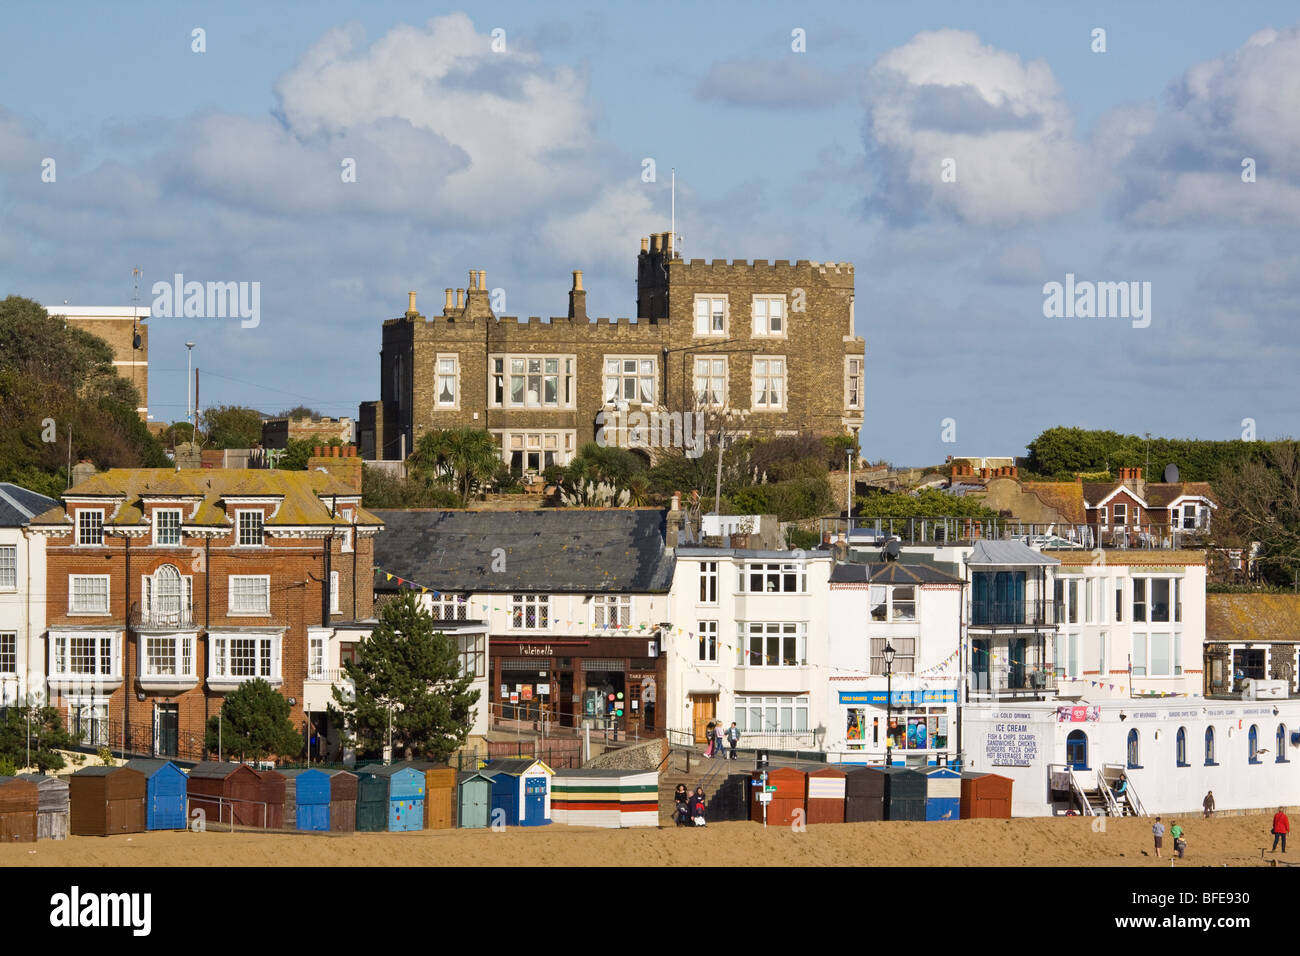 Broadstairs with Bleak House overlooking the town - Stock Image